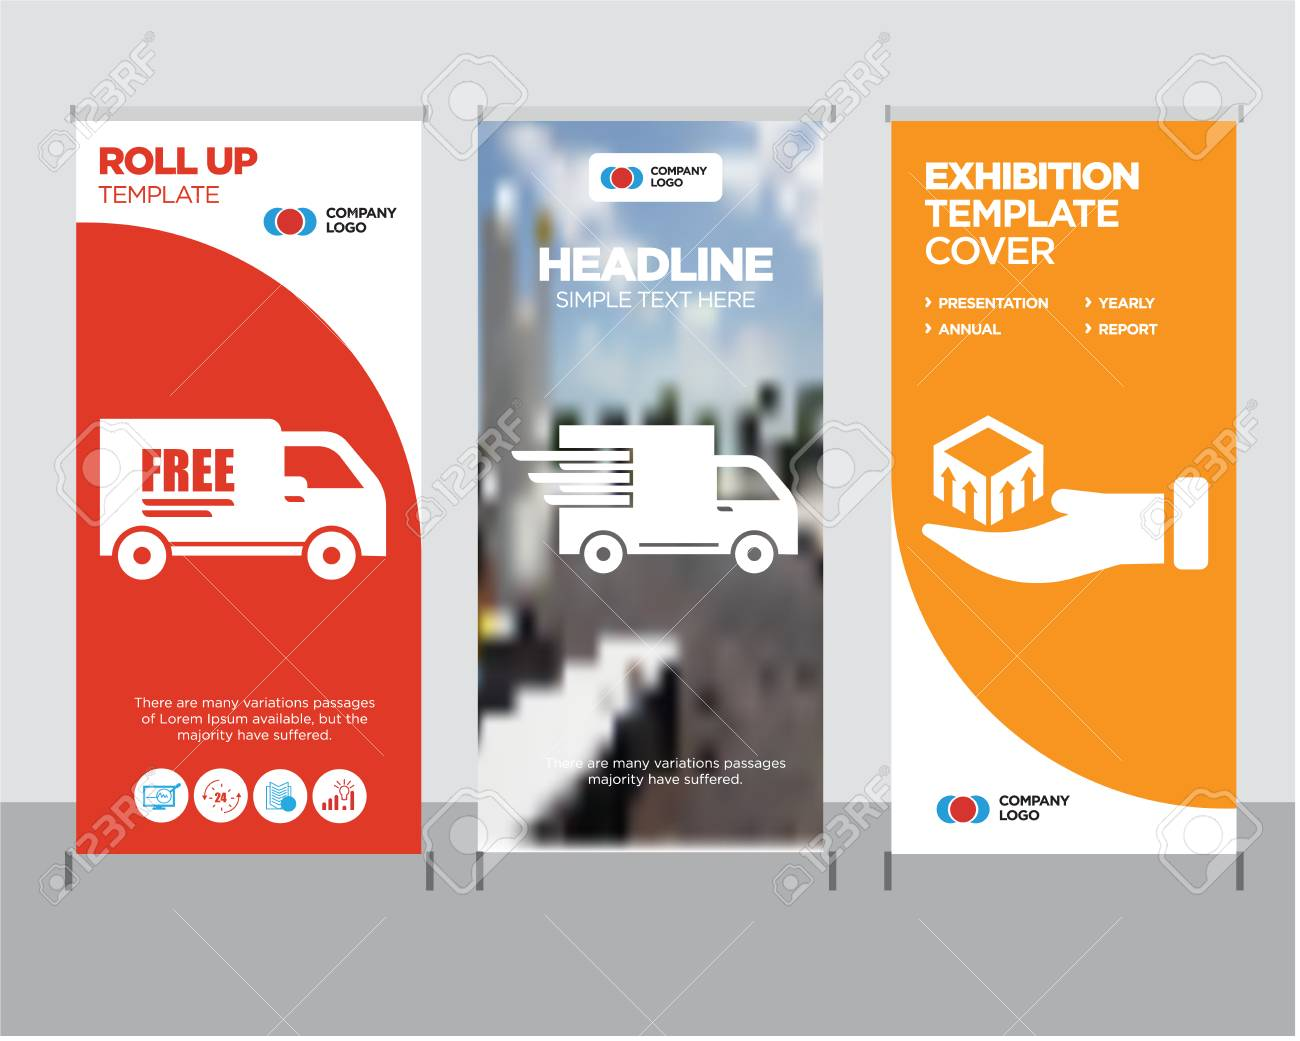 Package delivery in hand modern business roll up banner design template, Logistics delivery truck in movement creative poster stand or brochure concept, Free delivery truck cover publication - 99859902